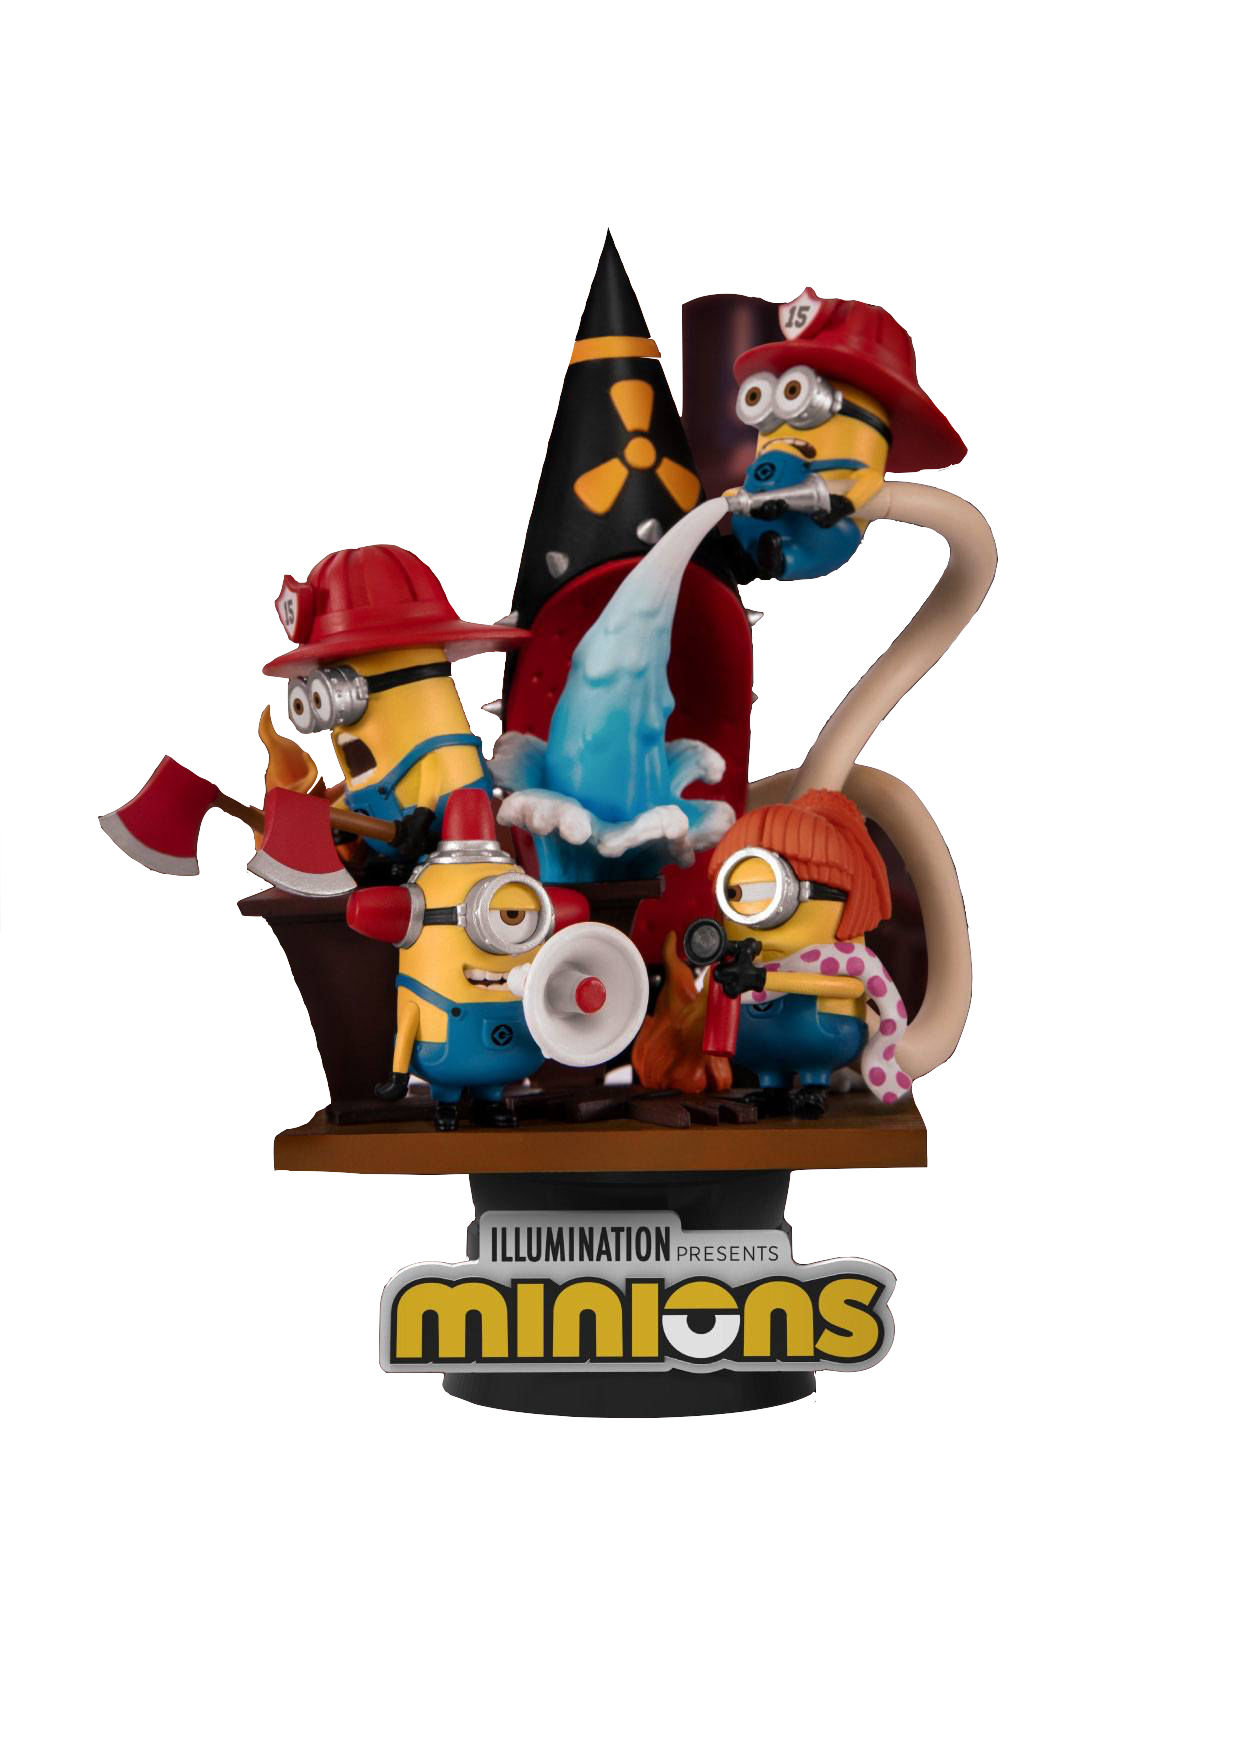 beast-kingdom-toys-minions-fire-fighters-pvc-diorama-toyslife